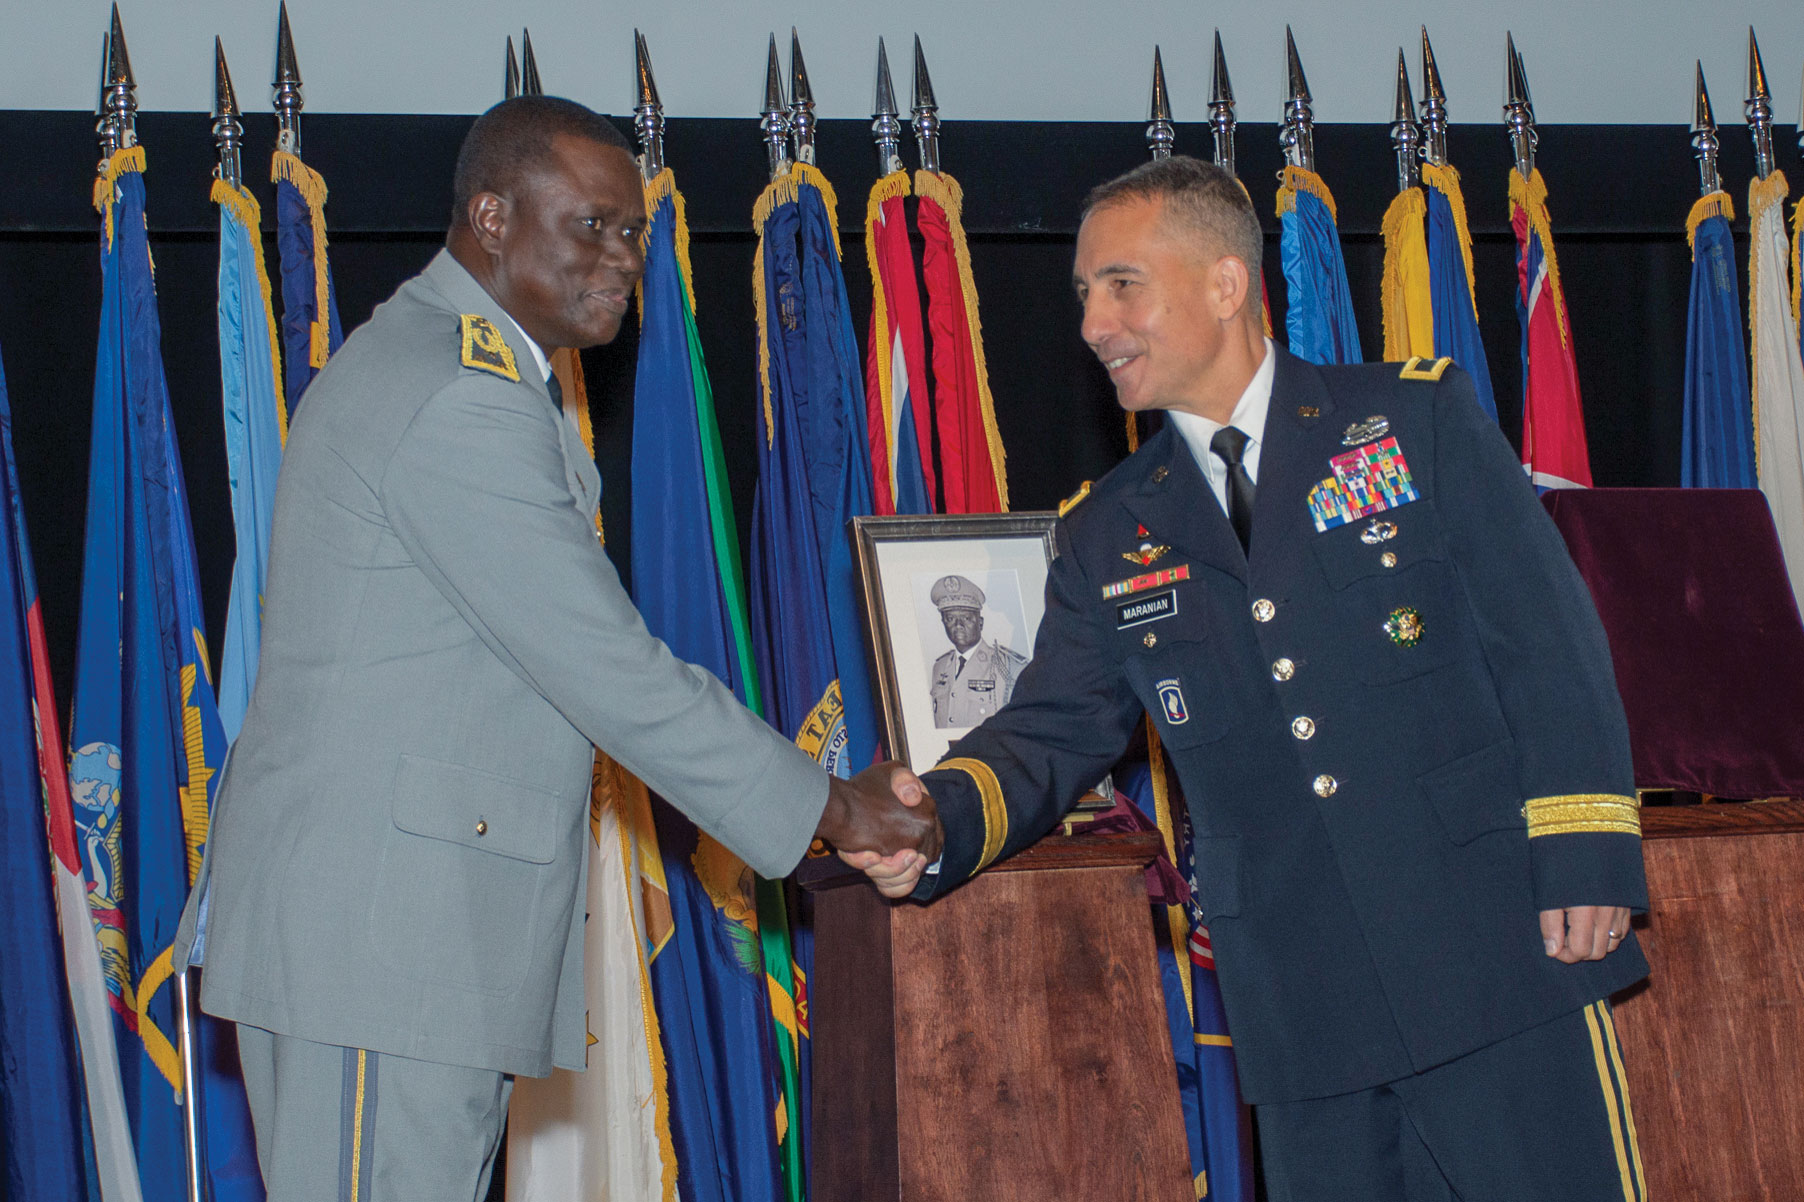 Brig. Gen. Stephen Maranian, CGSC deputy commandant and Army University provost, congratulates Maj. Gen. Francois Ndiaye, chief of staff of the Senegalese Army, after unveiling his IHOF portrait during the induction ceremony Oct. 3, 2019, at the Lewis and Clark Center.